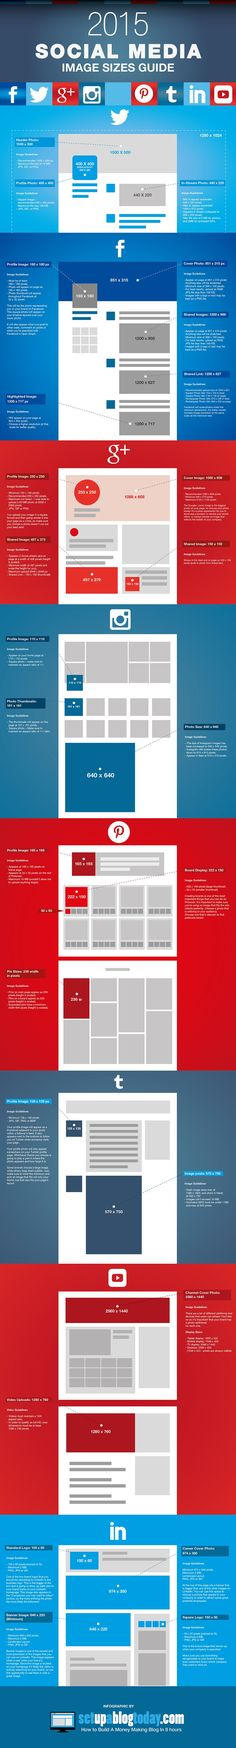 2015 Social Media Image Size Guide [INFOGRAPHIC]